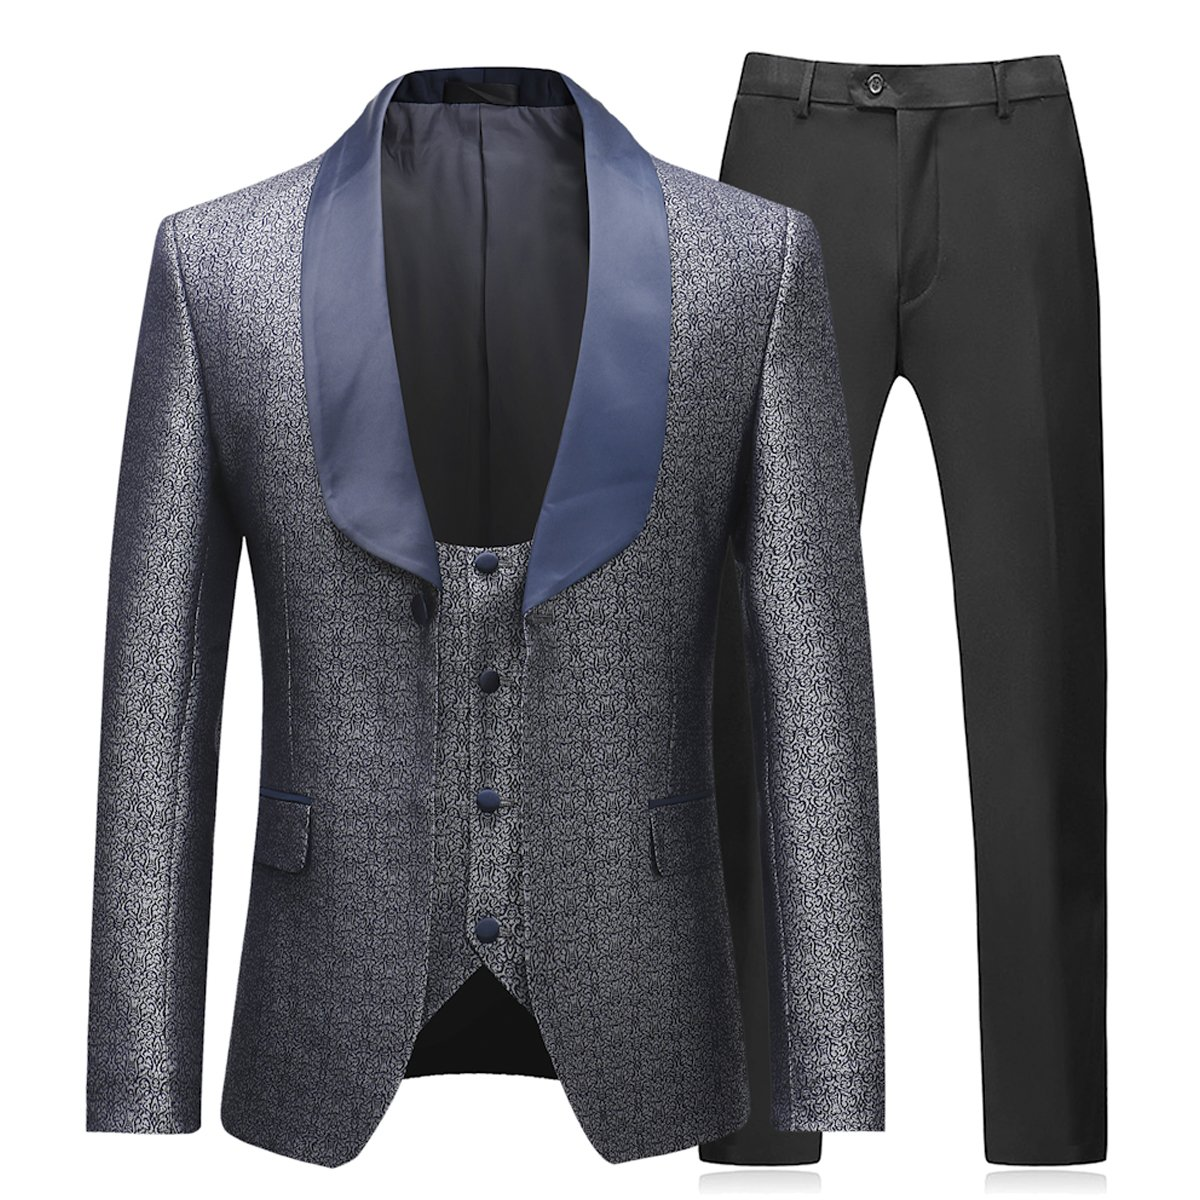 Boyland Mens 3 Pieces Tuxedo Suits Dinner Party Prom Groom Jacquard Tuxedos Gray by Boyland